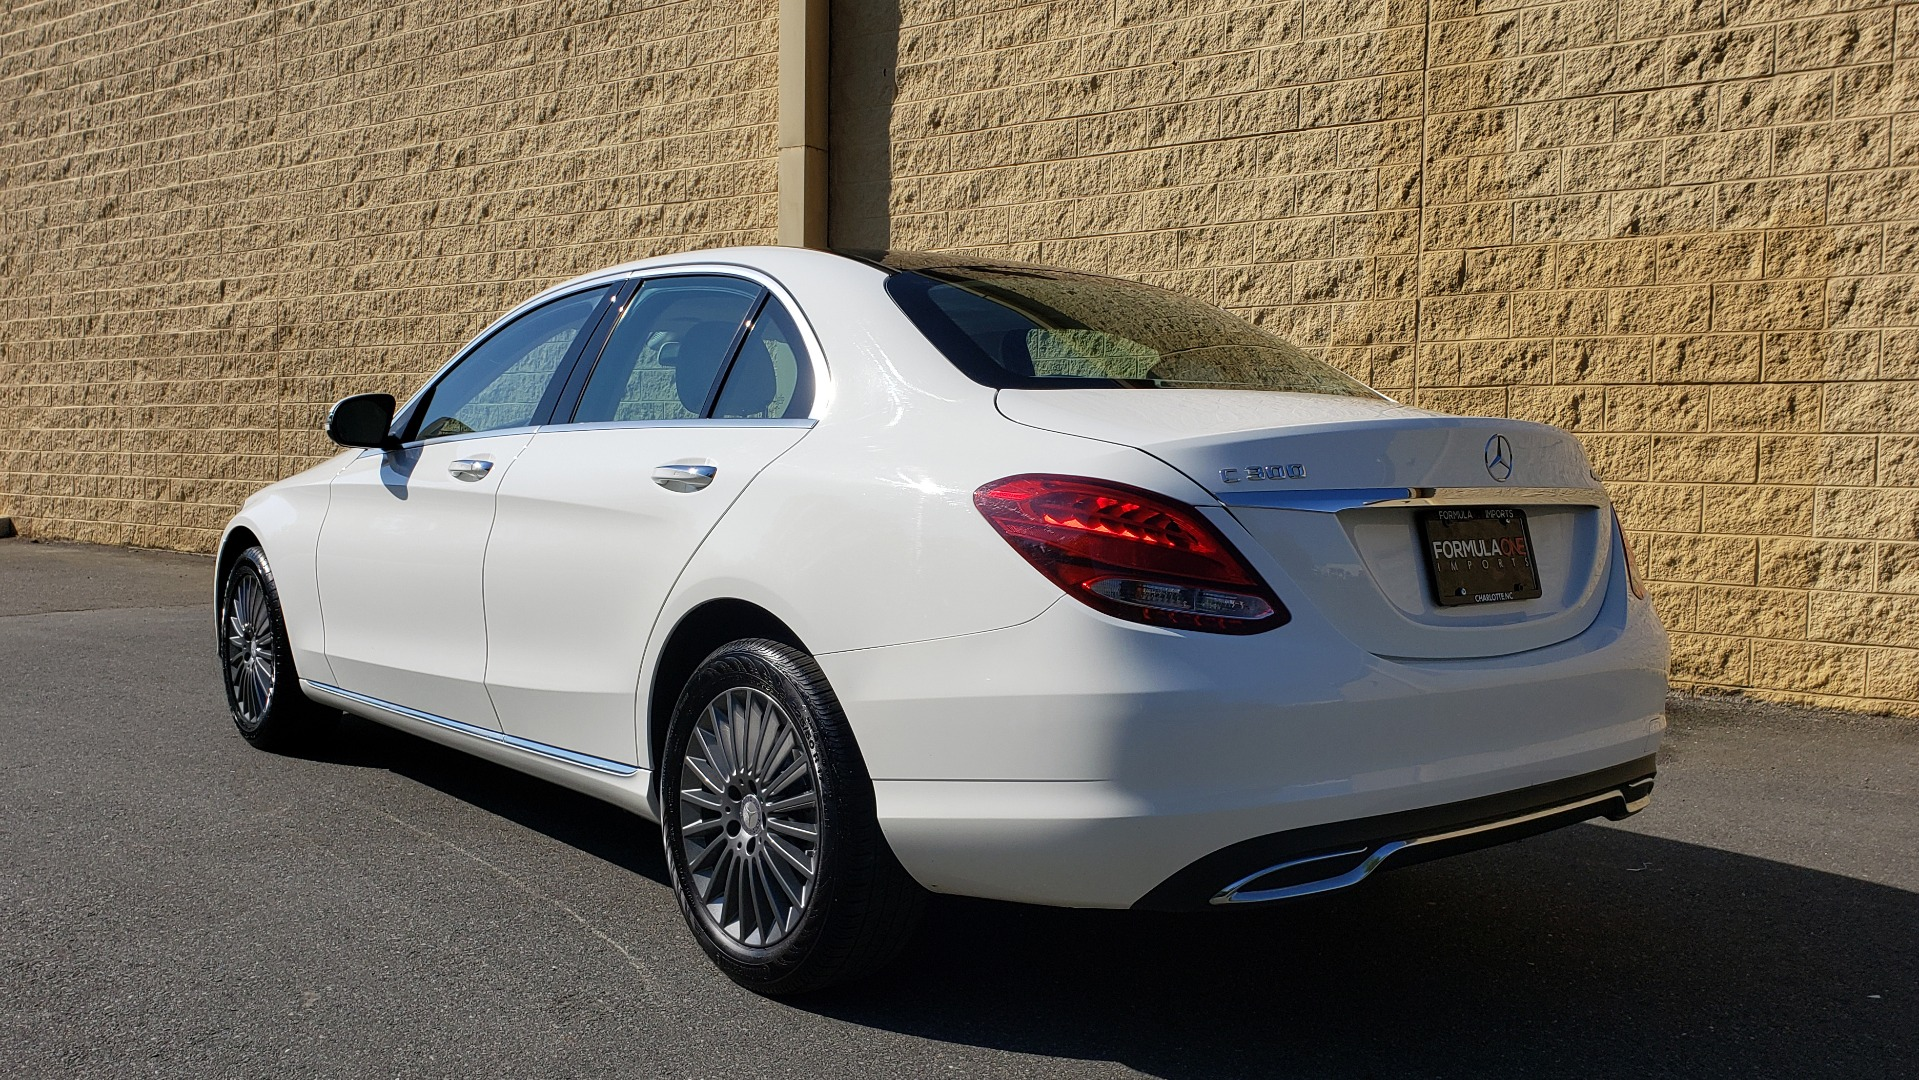 Used 2016 Mercedes-Benz C-Class C 300 LUXURY / NAV / PANO-ROOF / REARVIEW / BSM / HTD STS for sale Sold at Formula Imports in Charlotte NC 28227 3